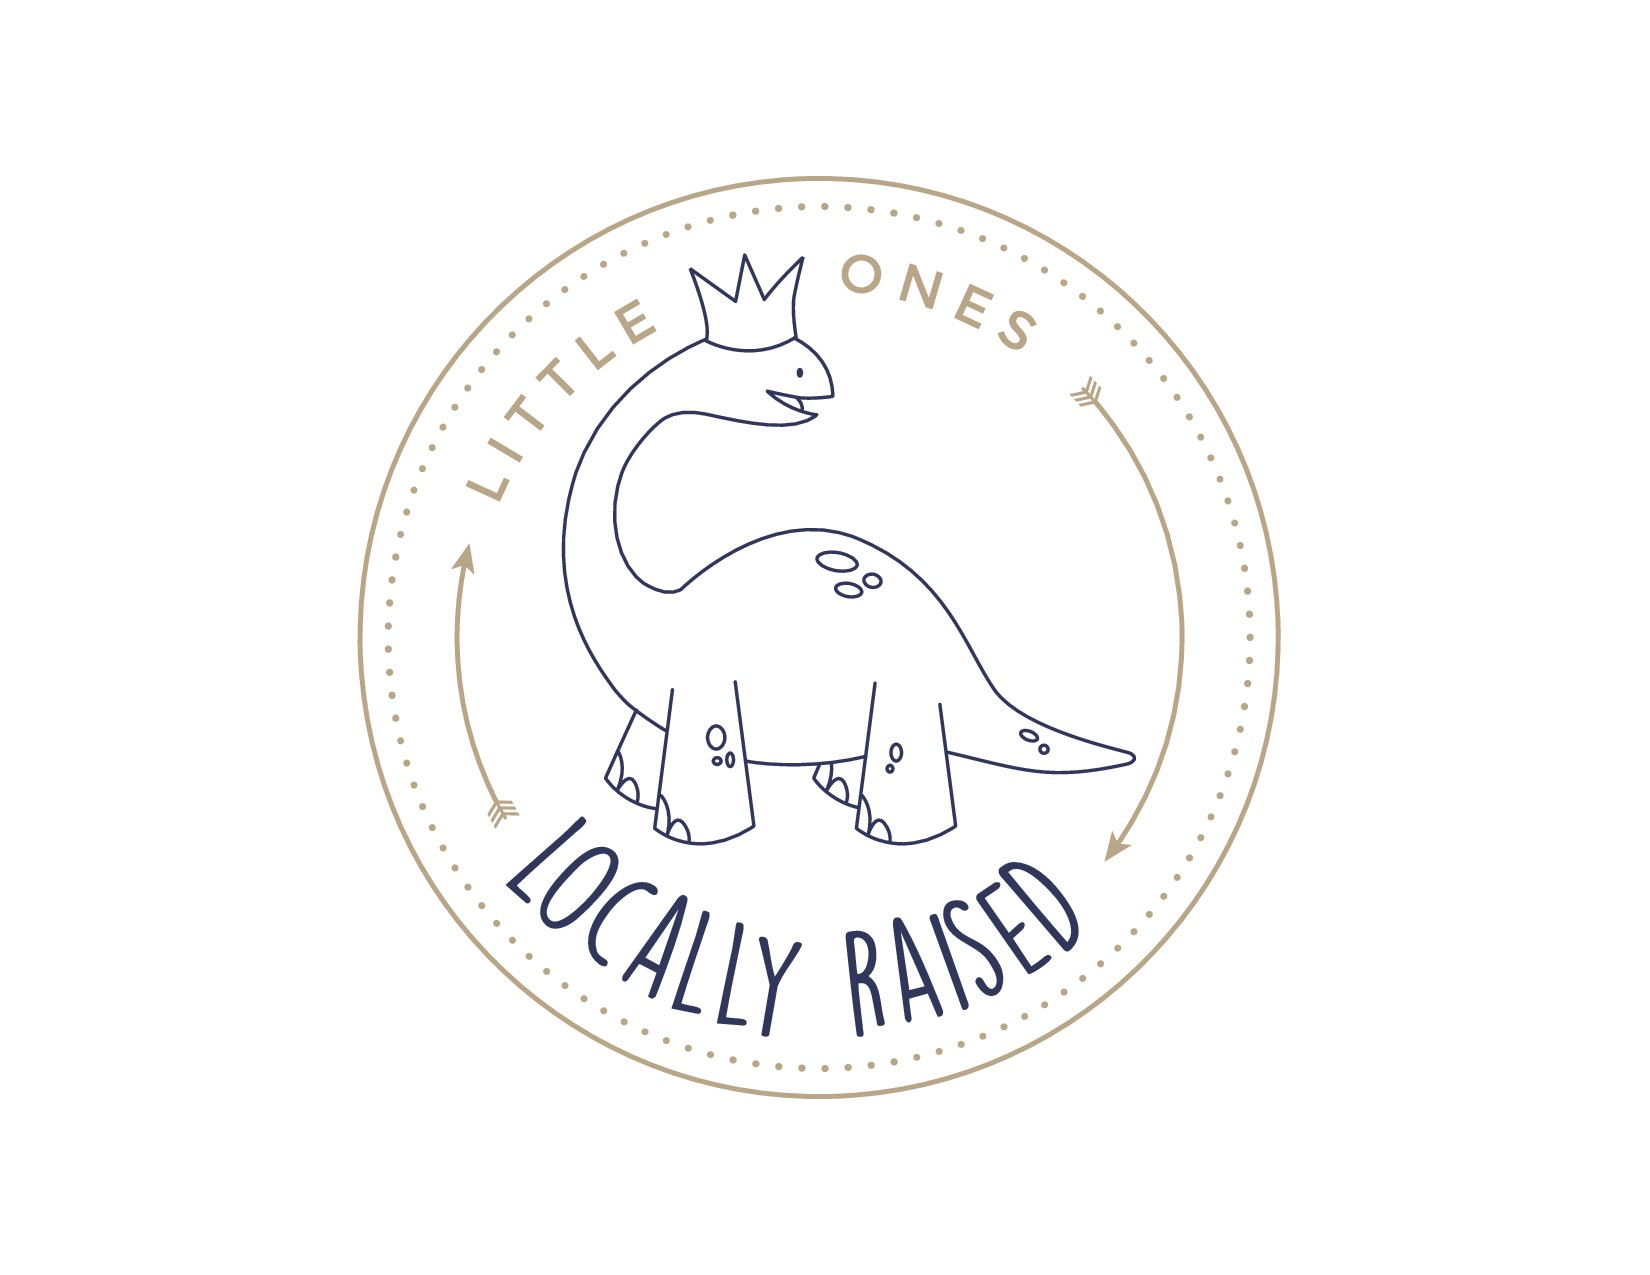 Two moms looking to open a small boutique to help put our kids through college! Looking for an organic feel for our stor